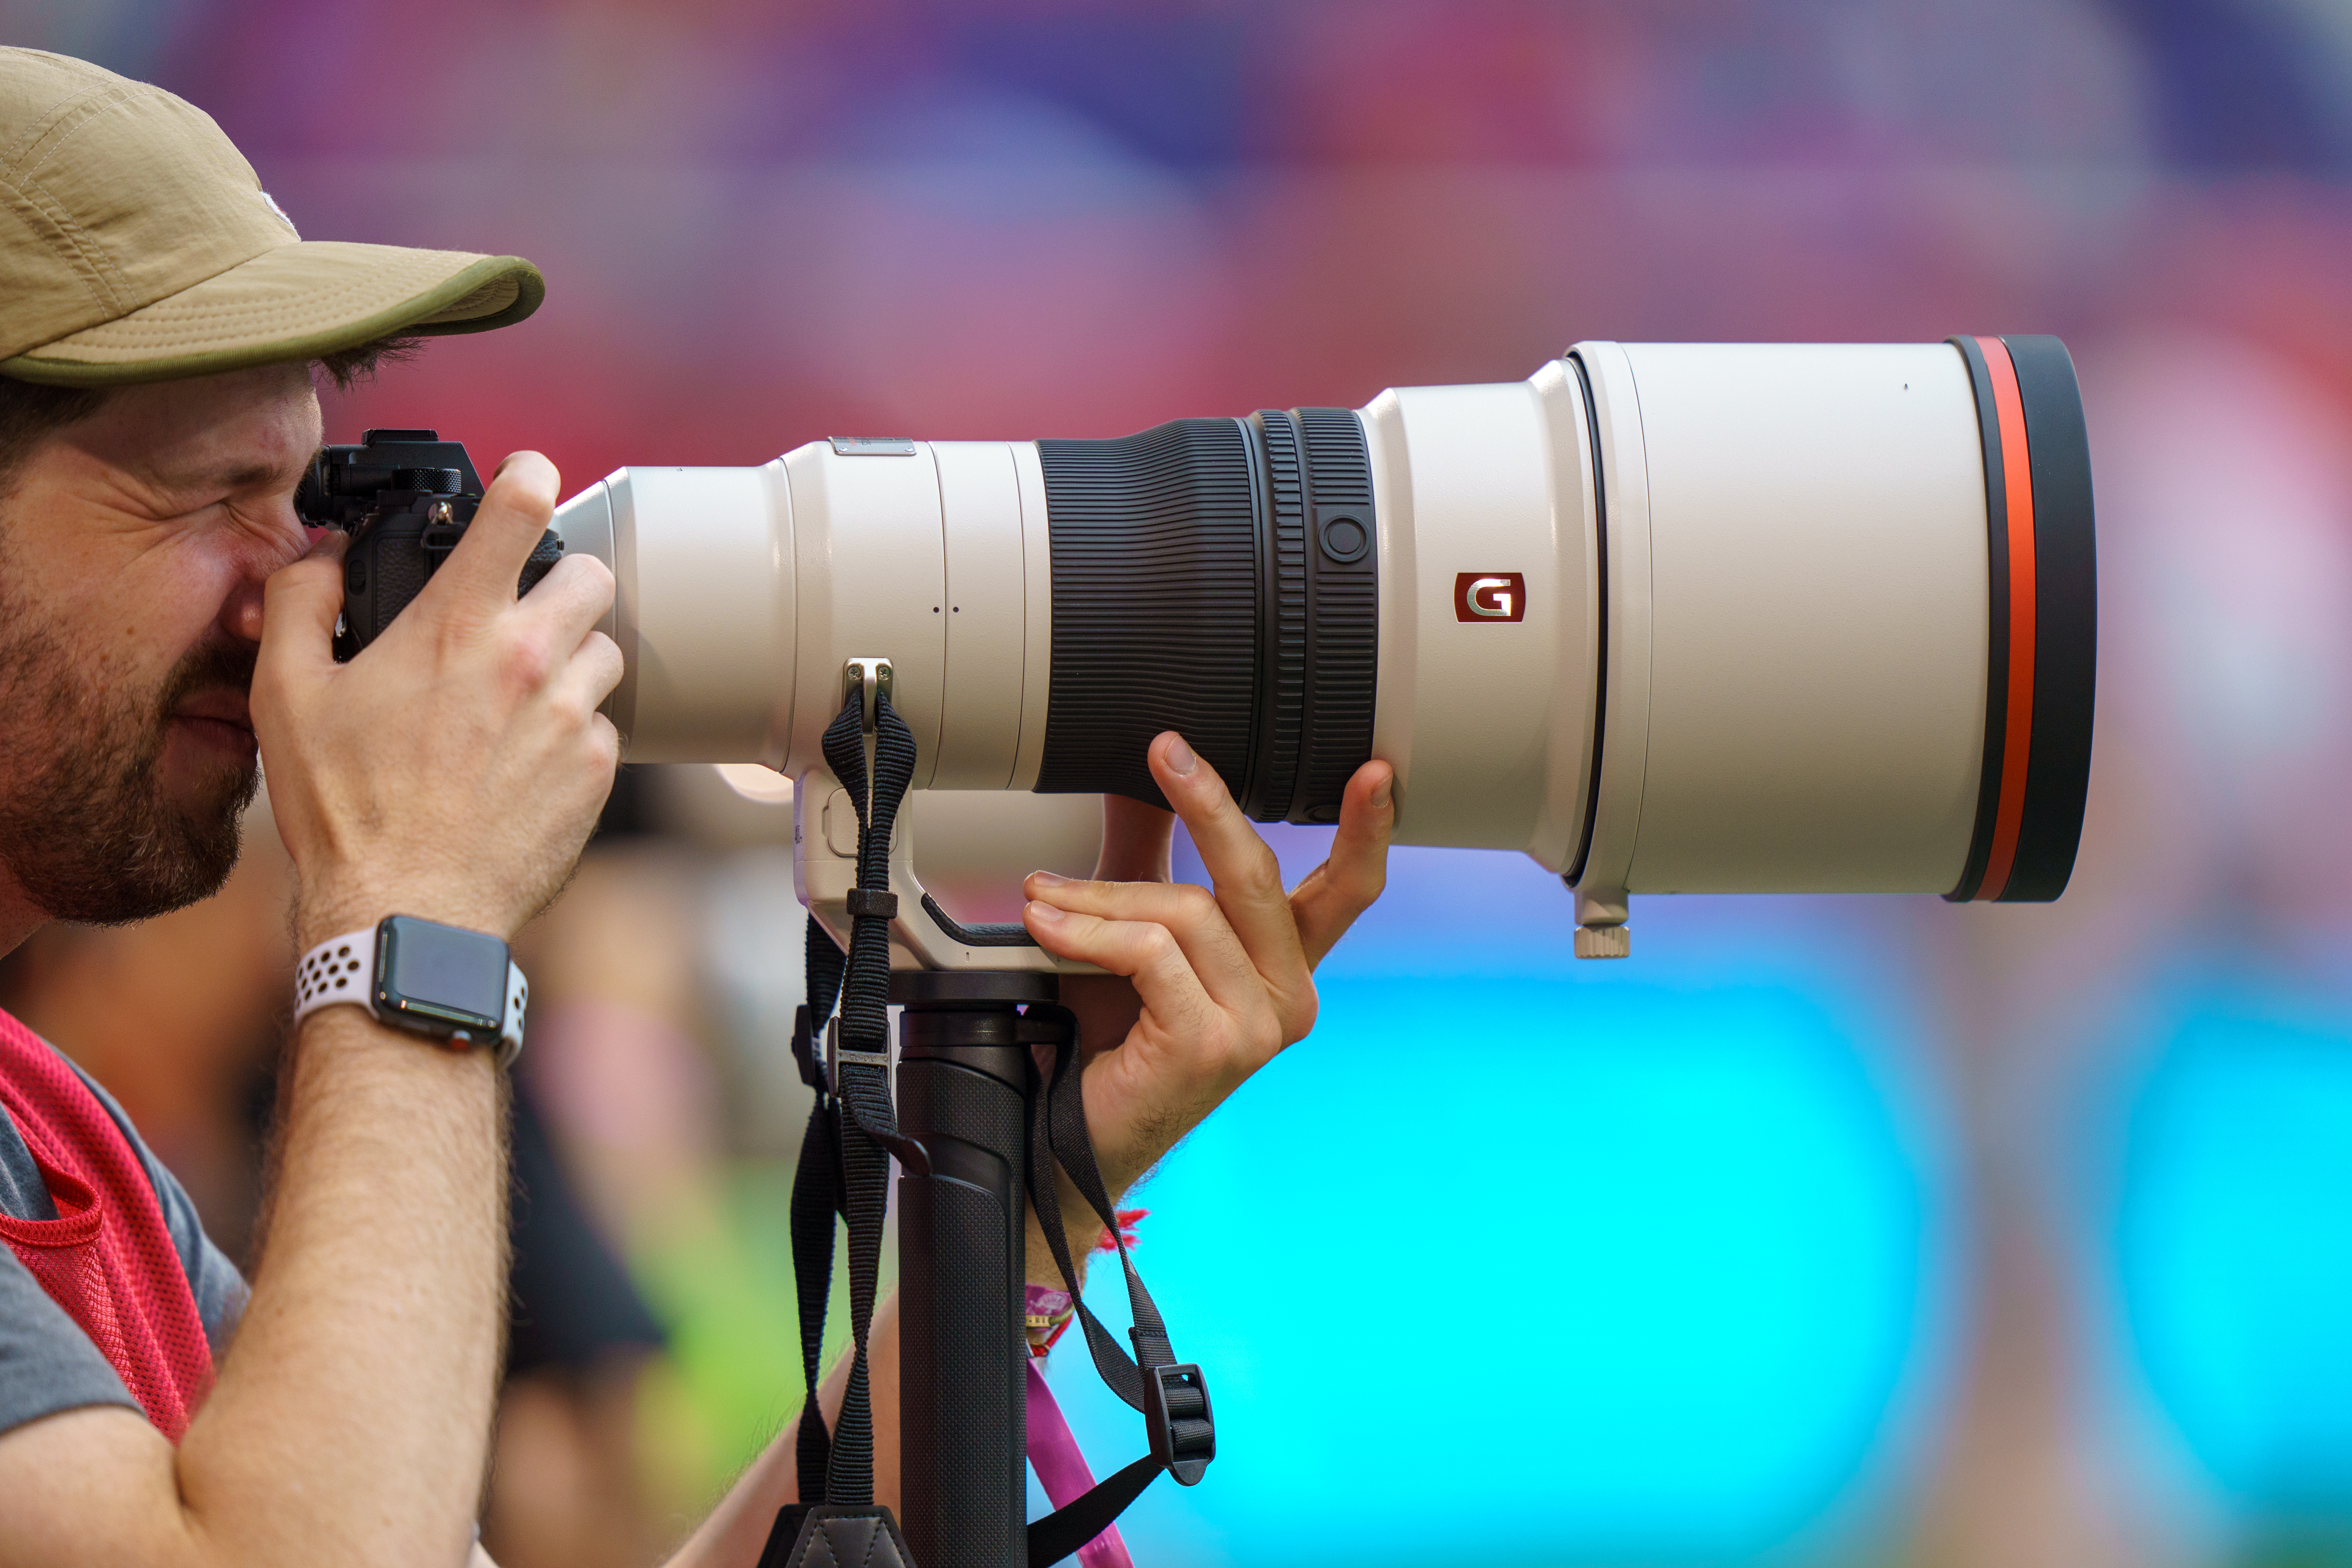 Photography News Rick Rea Sony Fe 400mm F28 Gm Oss Lens As You Would Expect For 12000 The Has Image Stabilization With Three Different Modes Various Sports Action Scenarios It Also A Customizable